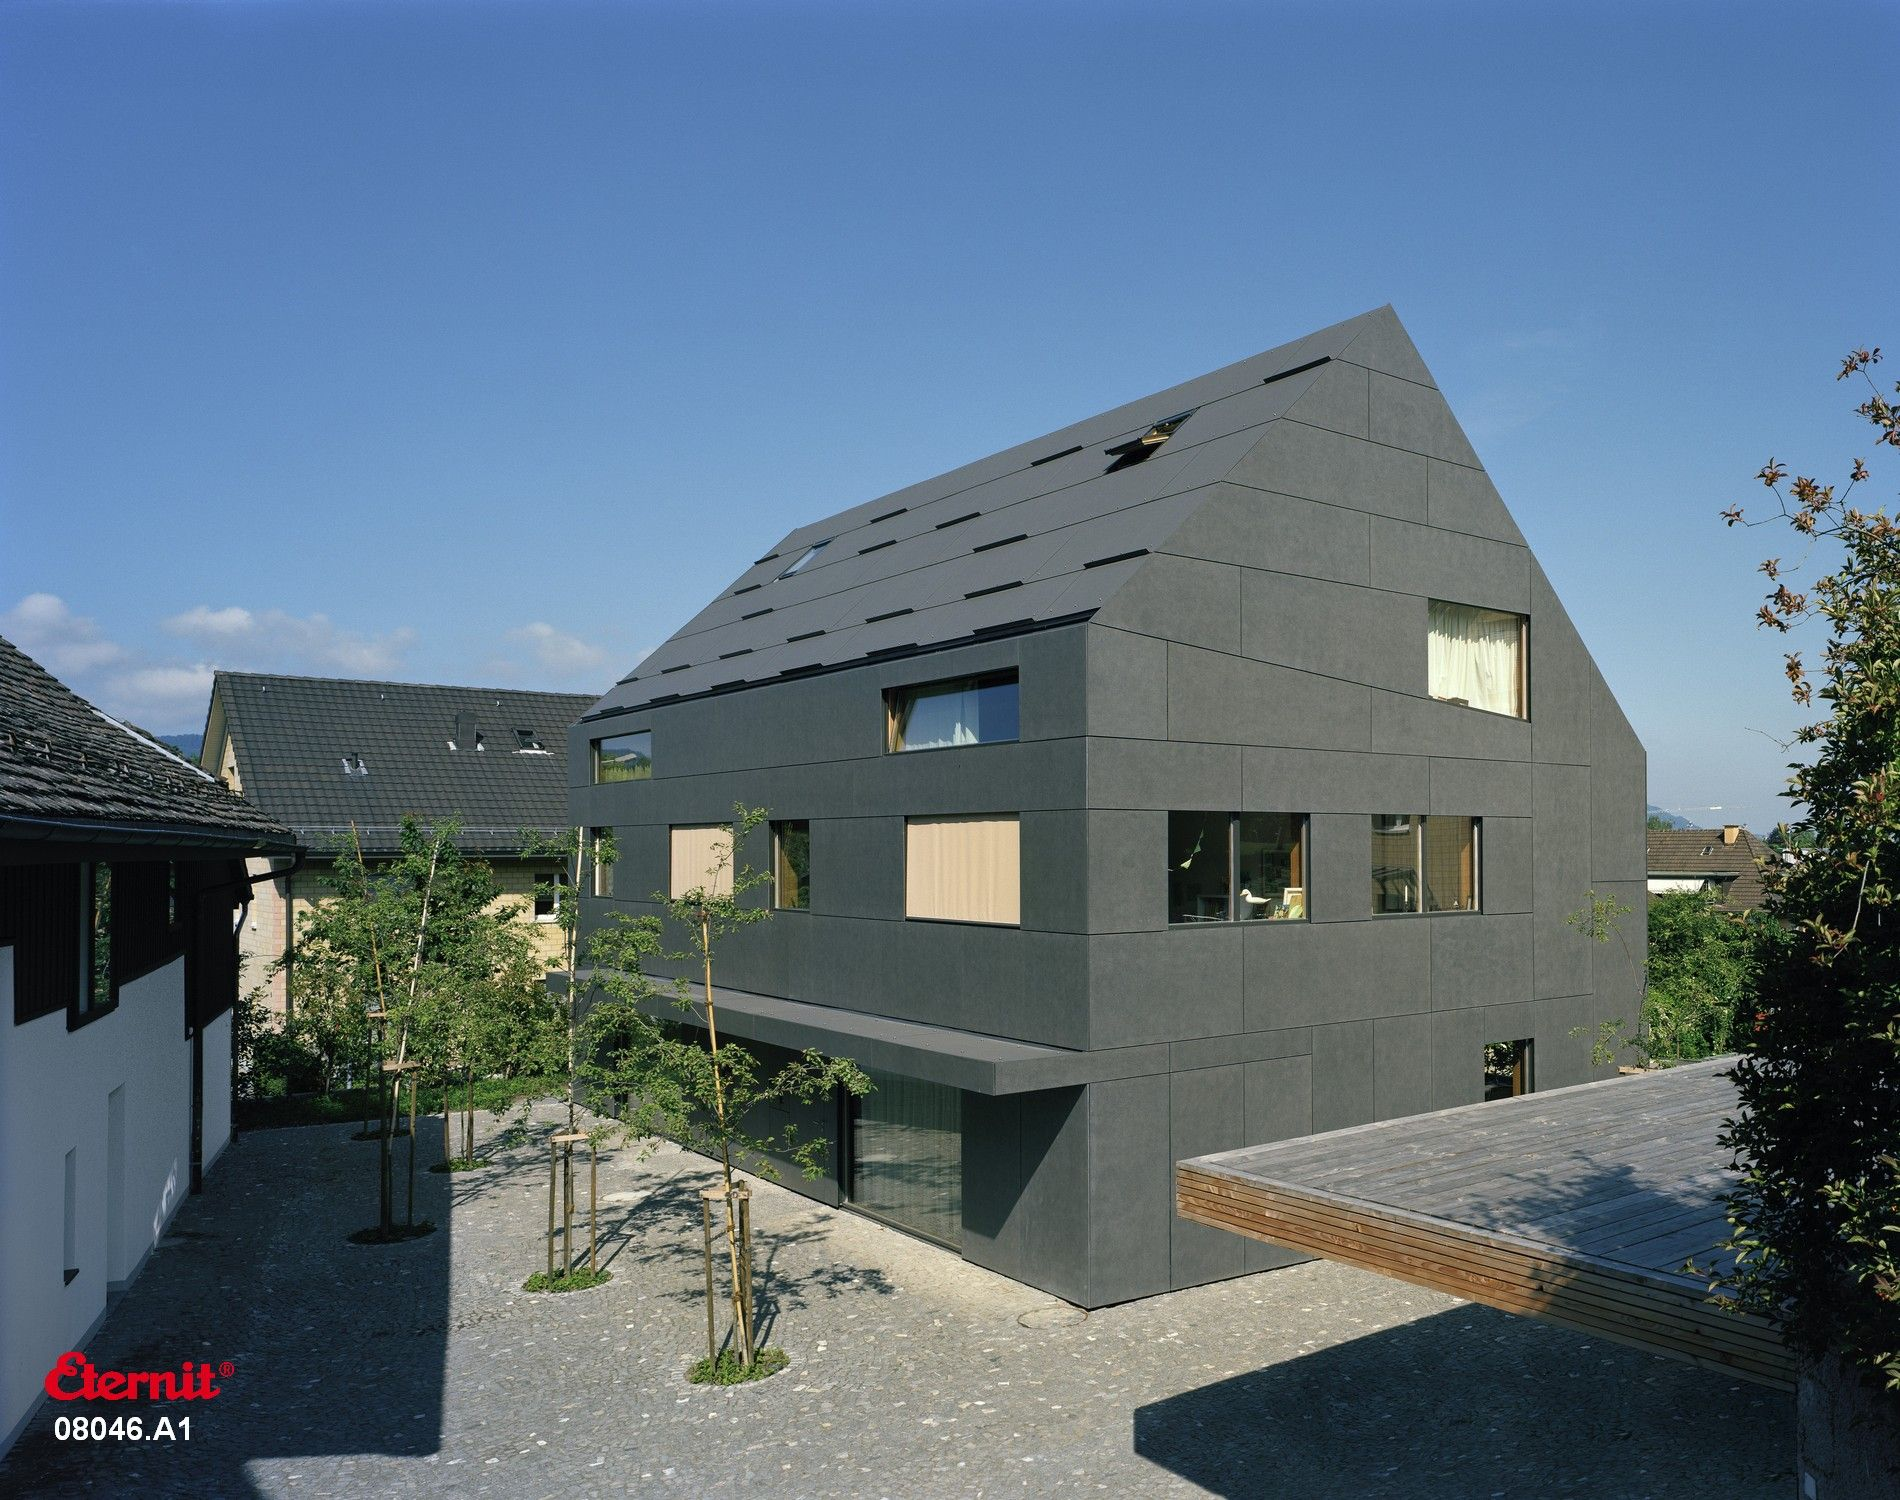 Eternit Fassade Struktur Facade Eternit Ideas For The House Duplex House House House